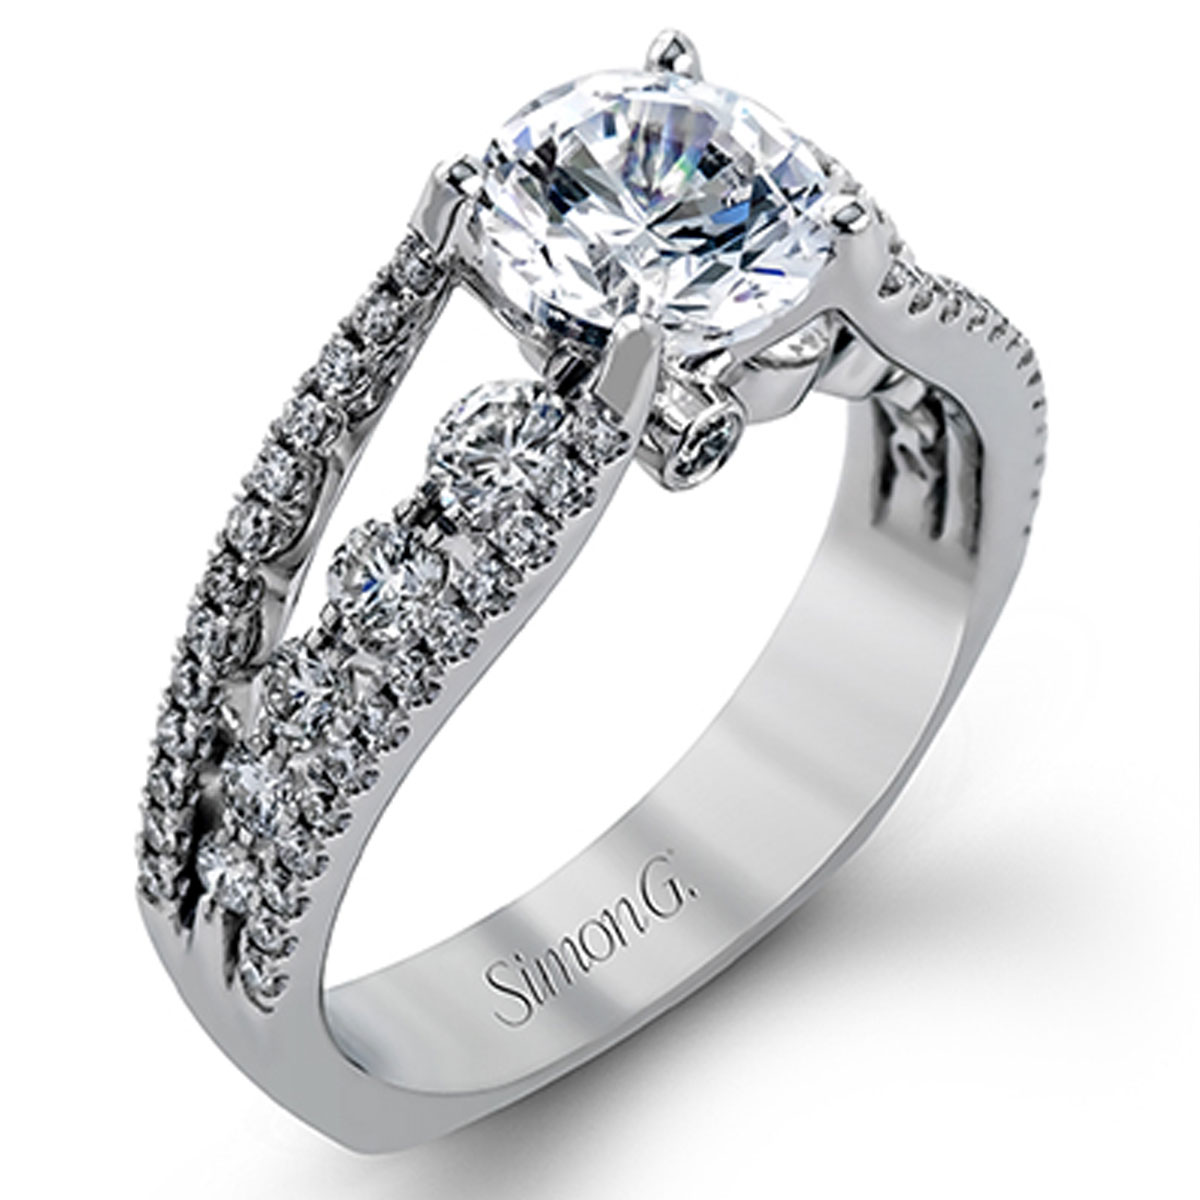 Simon G Engagement Rings 0 91ctw Diamond Accents